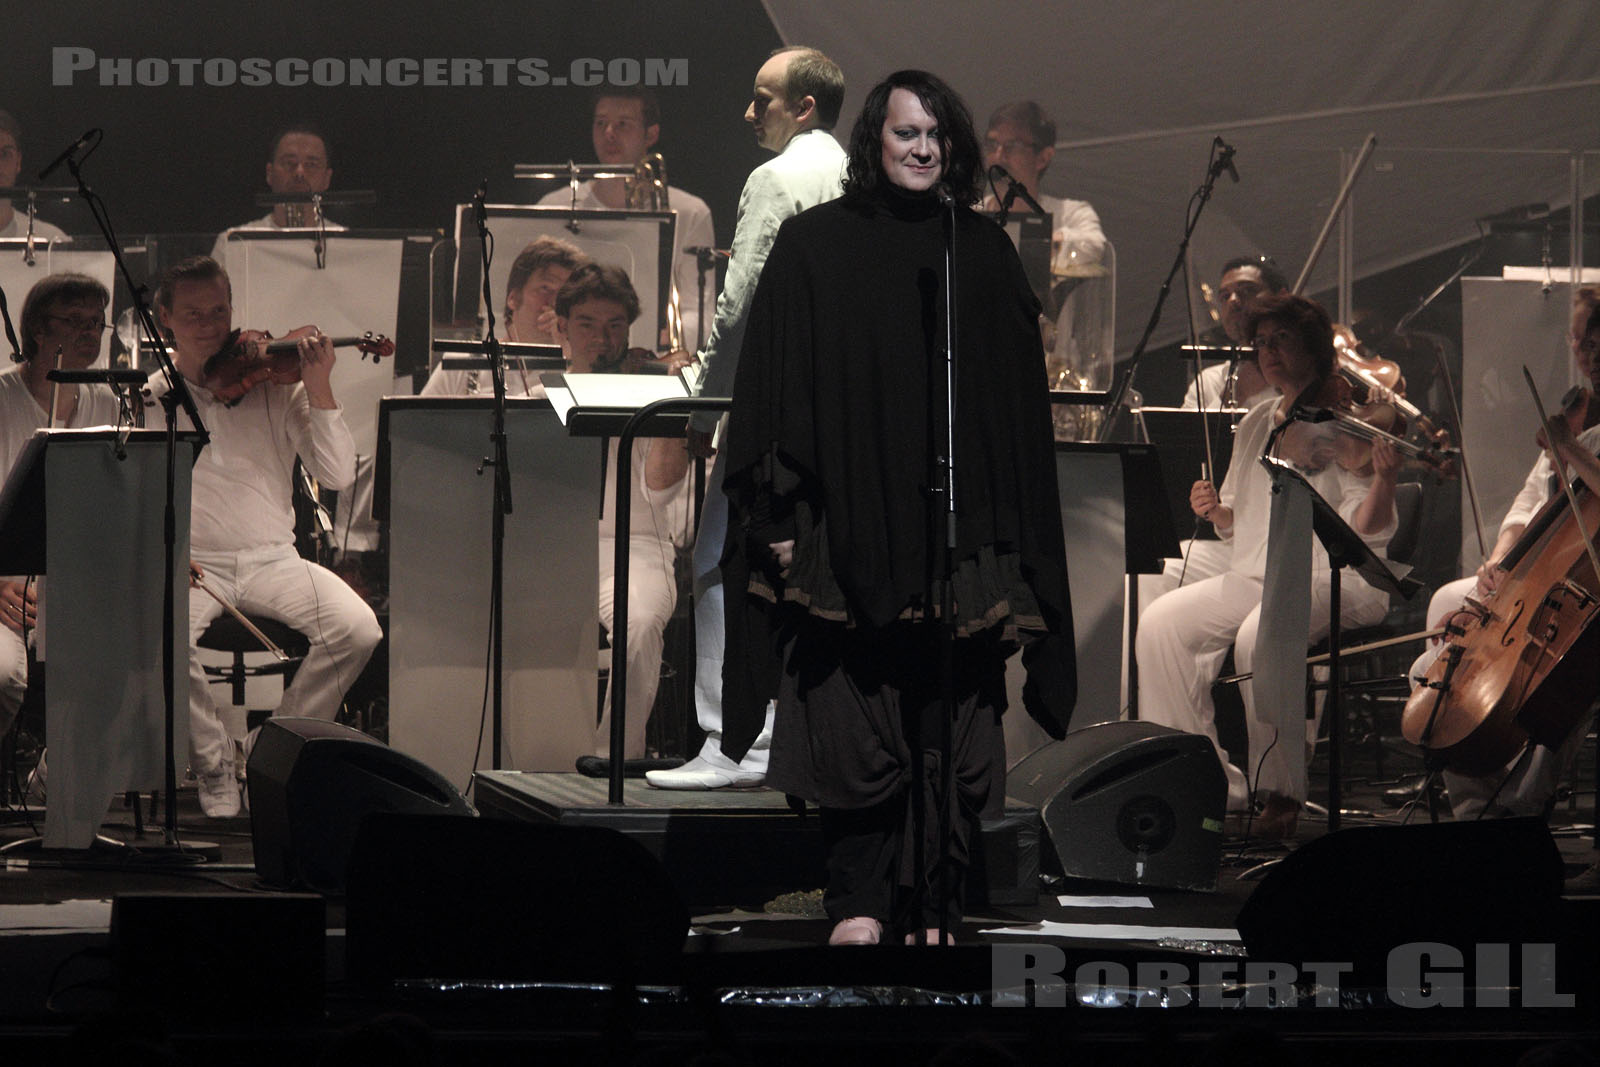 ANTONY AND THE JOHNSONS - 2012-07-03 - PARIS - Salle Pleyel